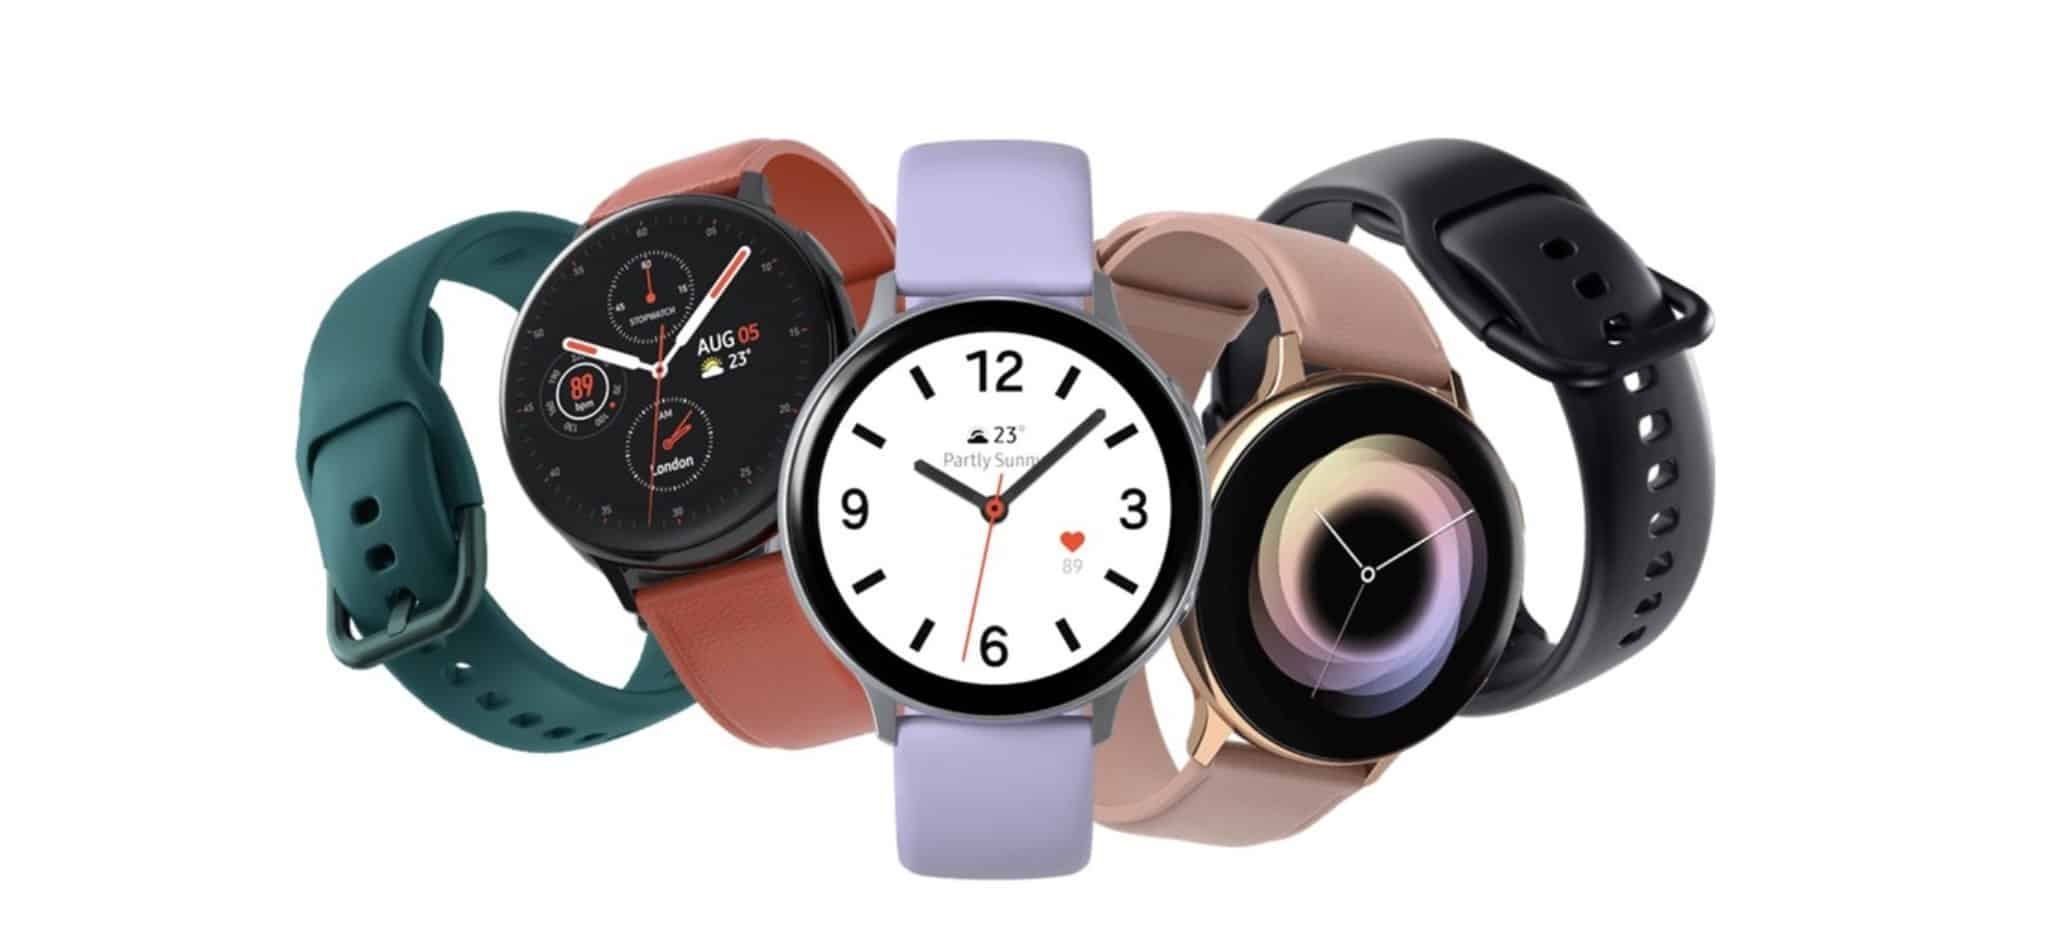 Samsung Galaxy Watch Active 2 launched with ECG and digital bezel for $279